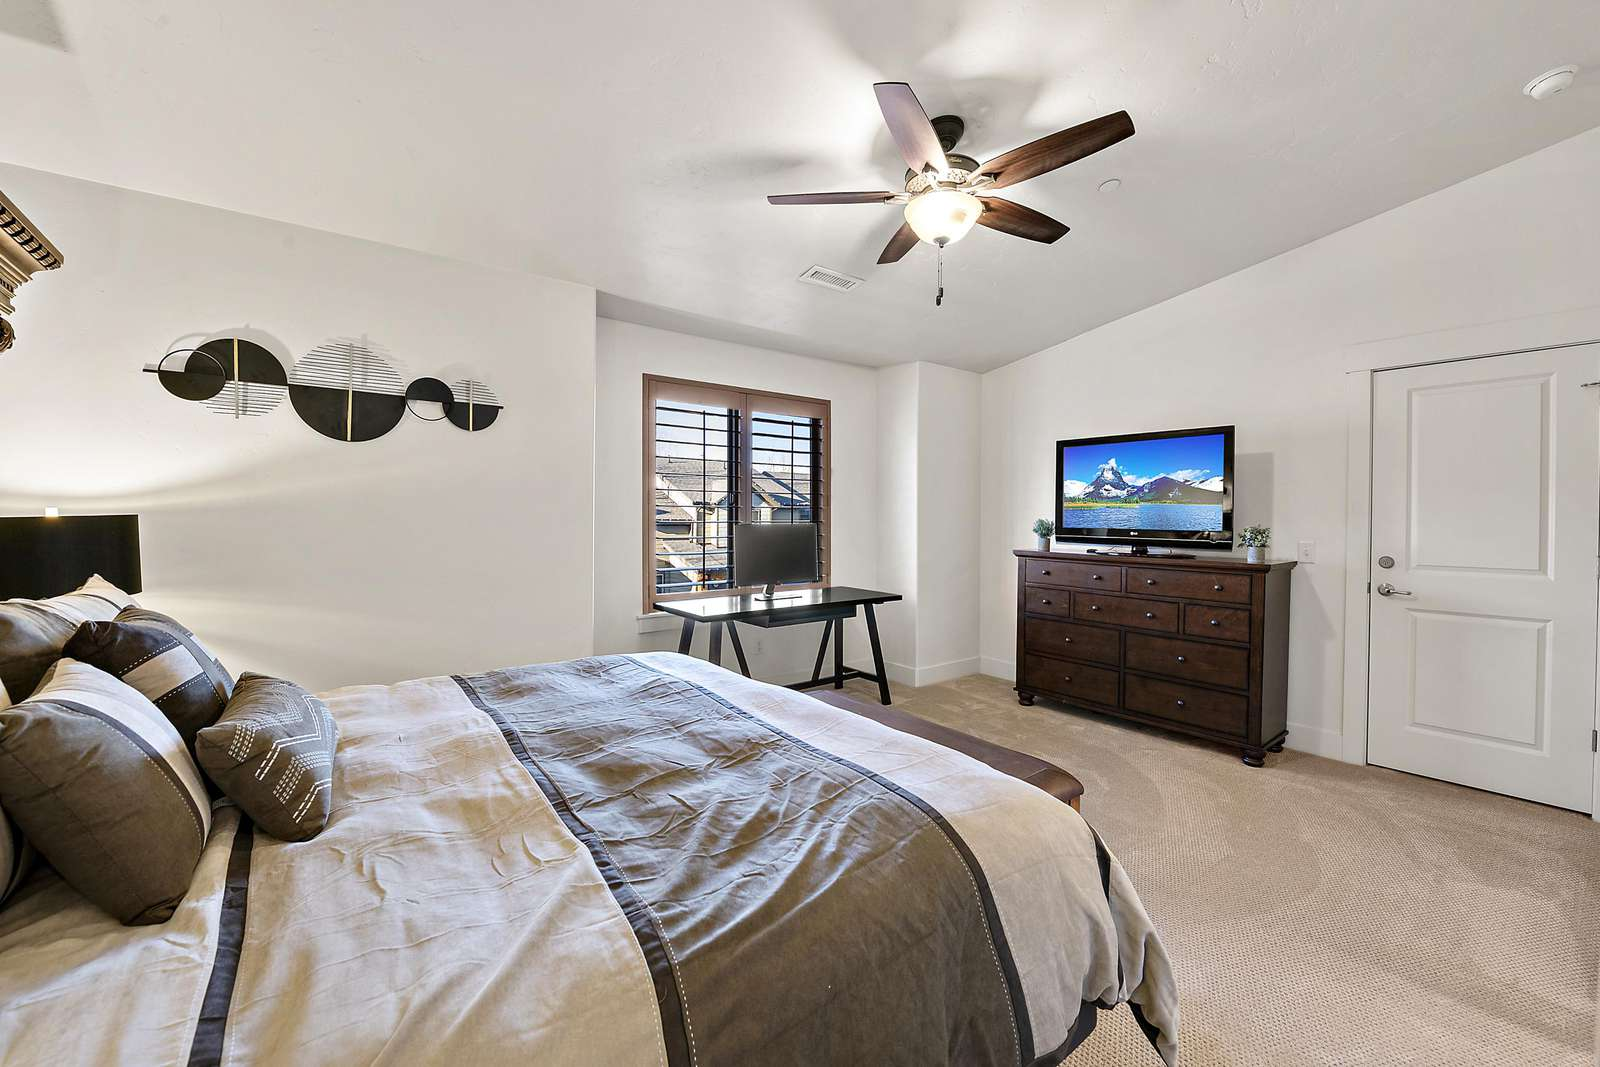 Master bedroom with window views and dresser